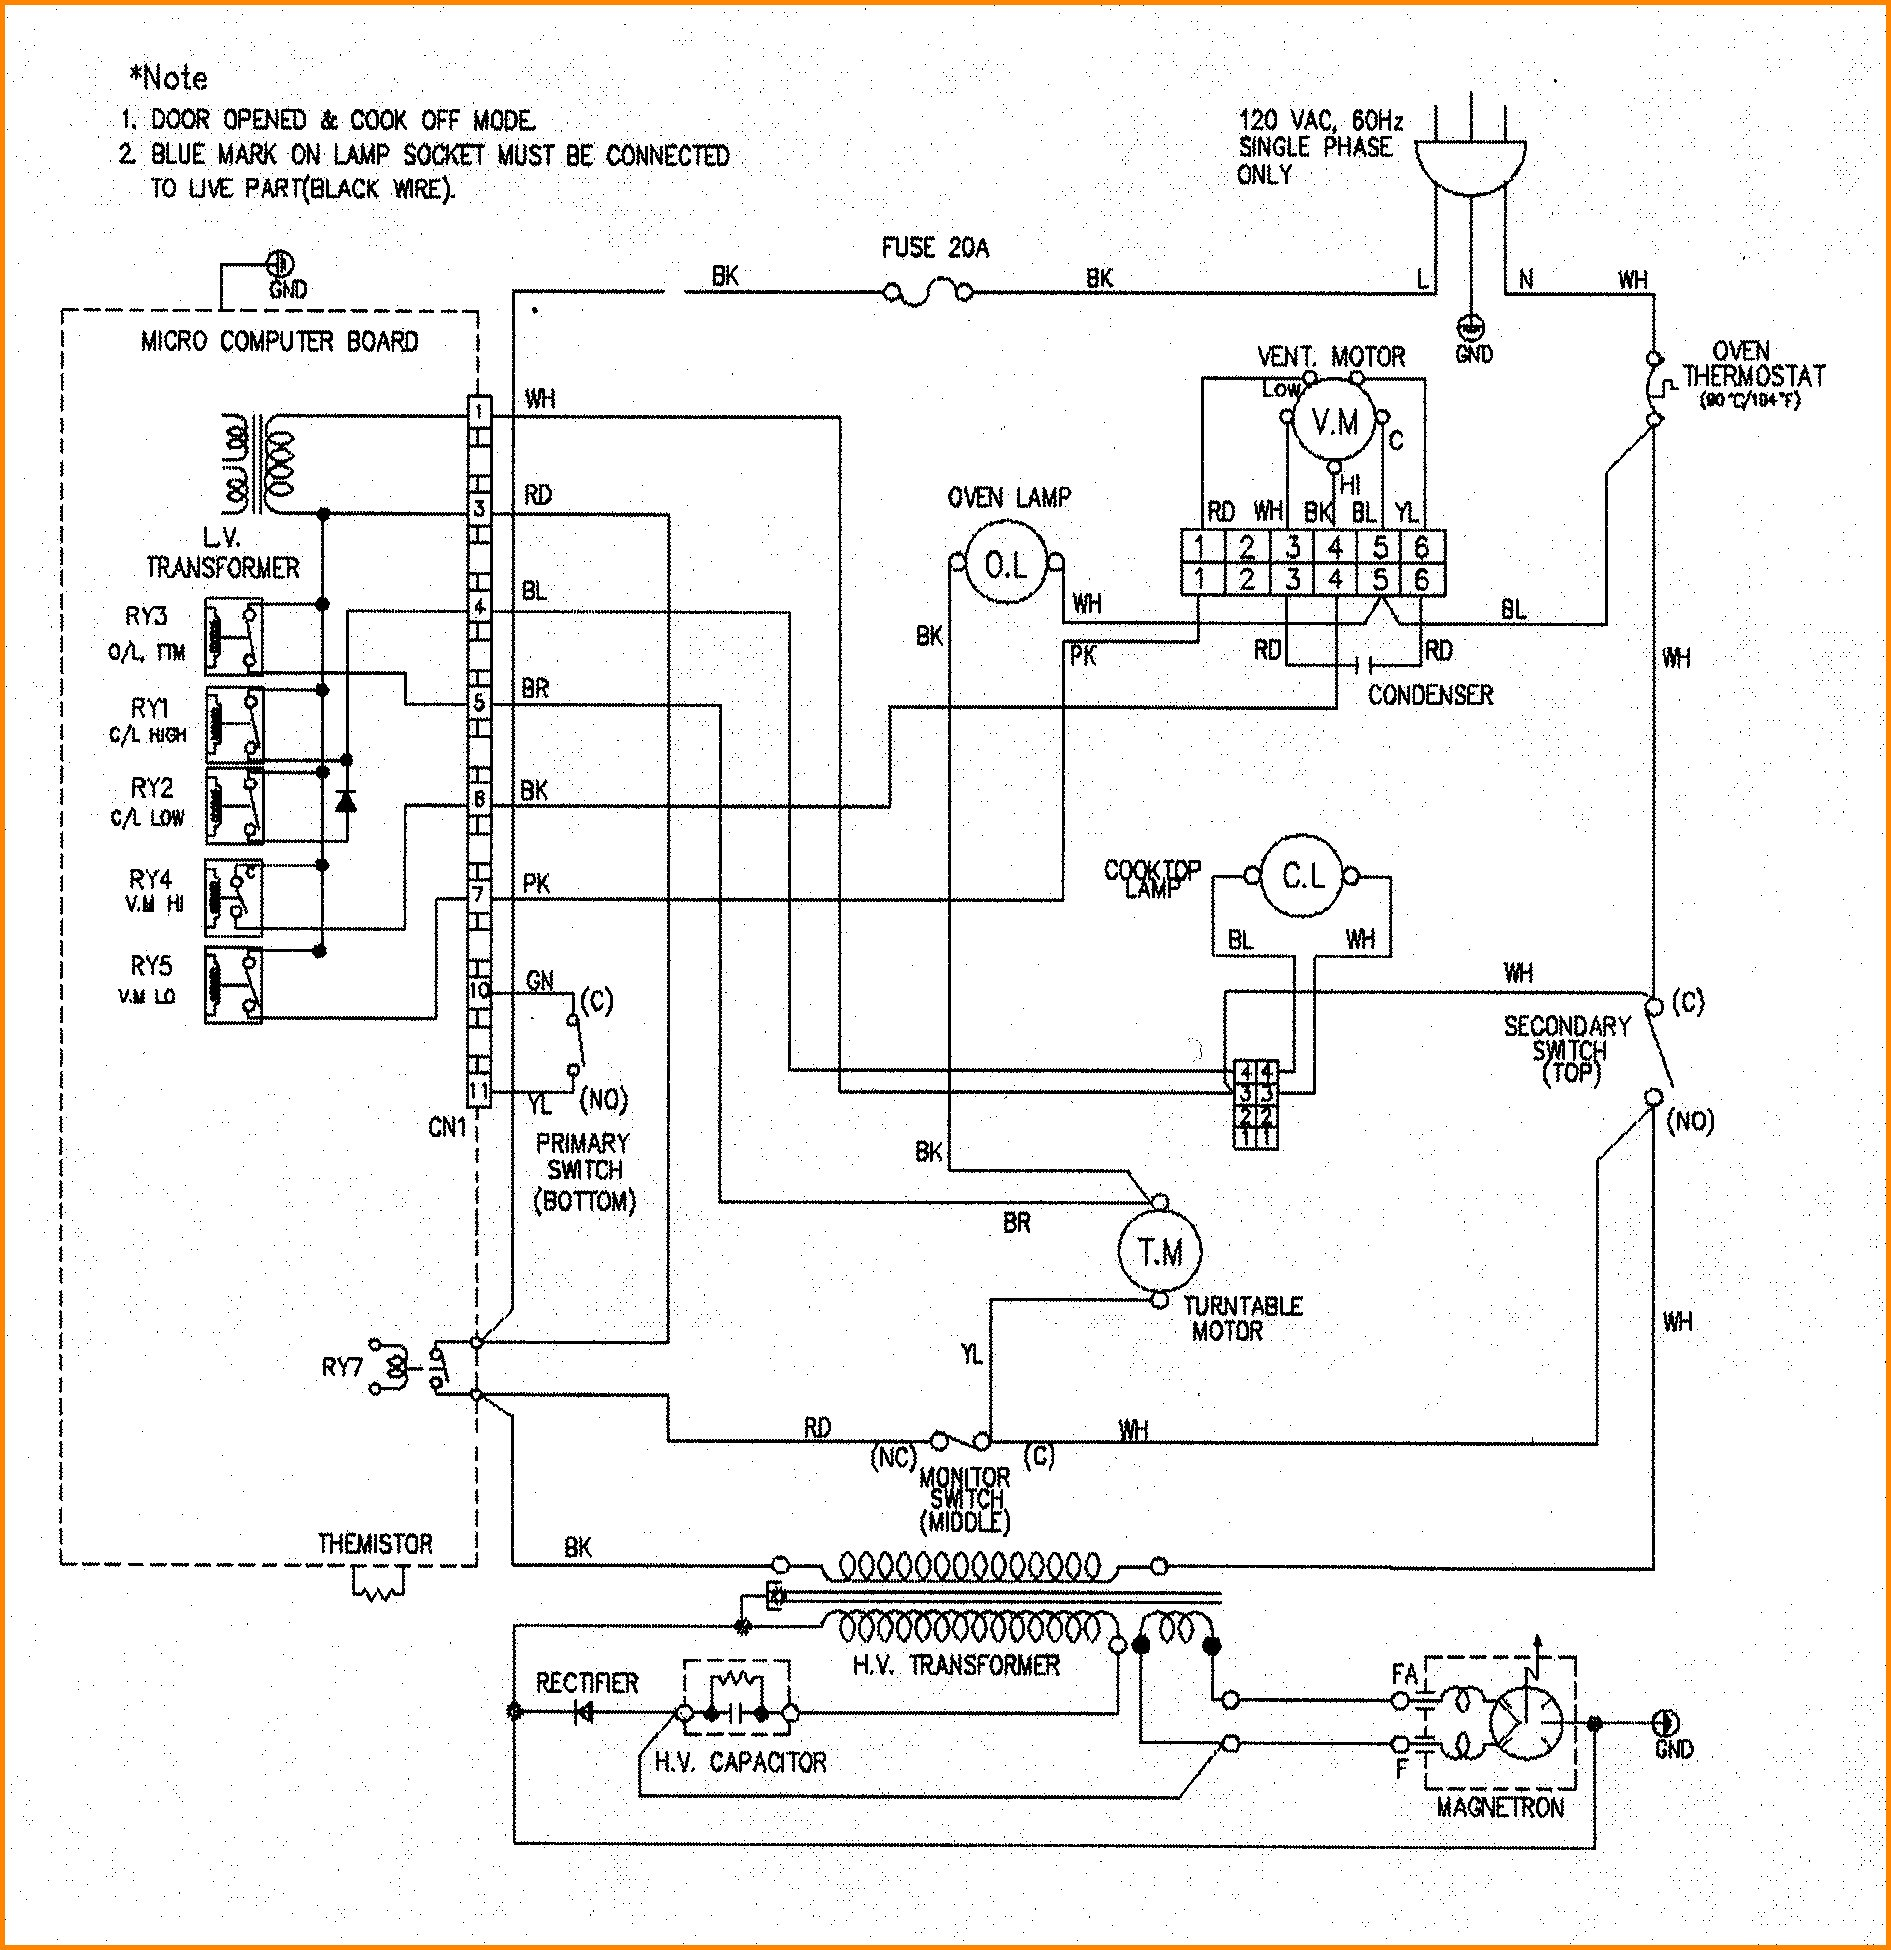 powder coat oven wiring diagram Collection-wiring diagram for oven thermostat free wiring diagram rh xwiaw us 15-m